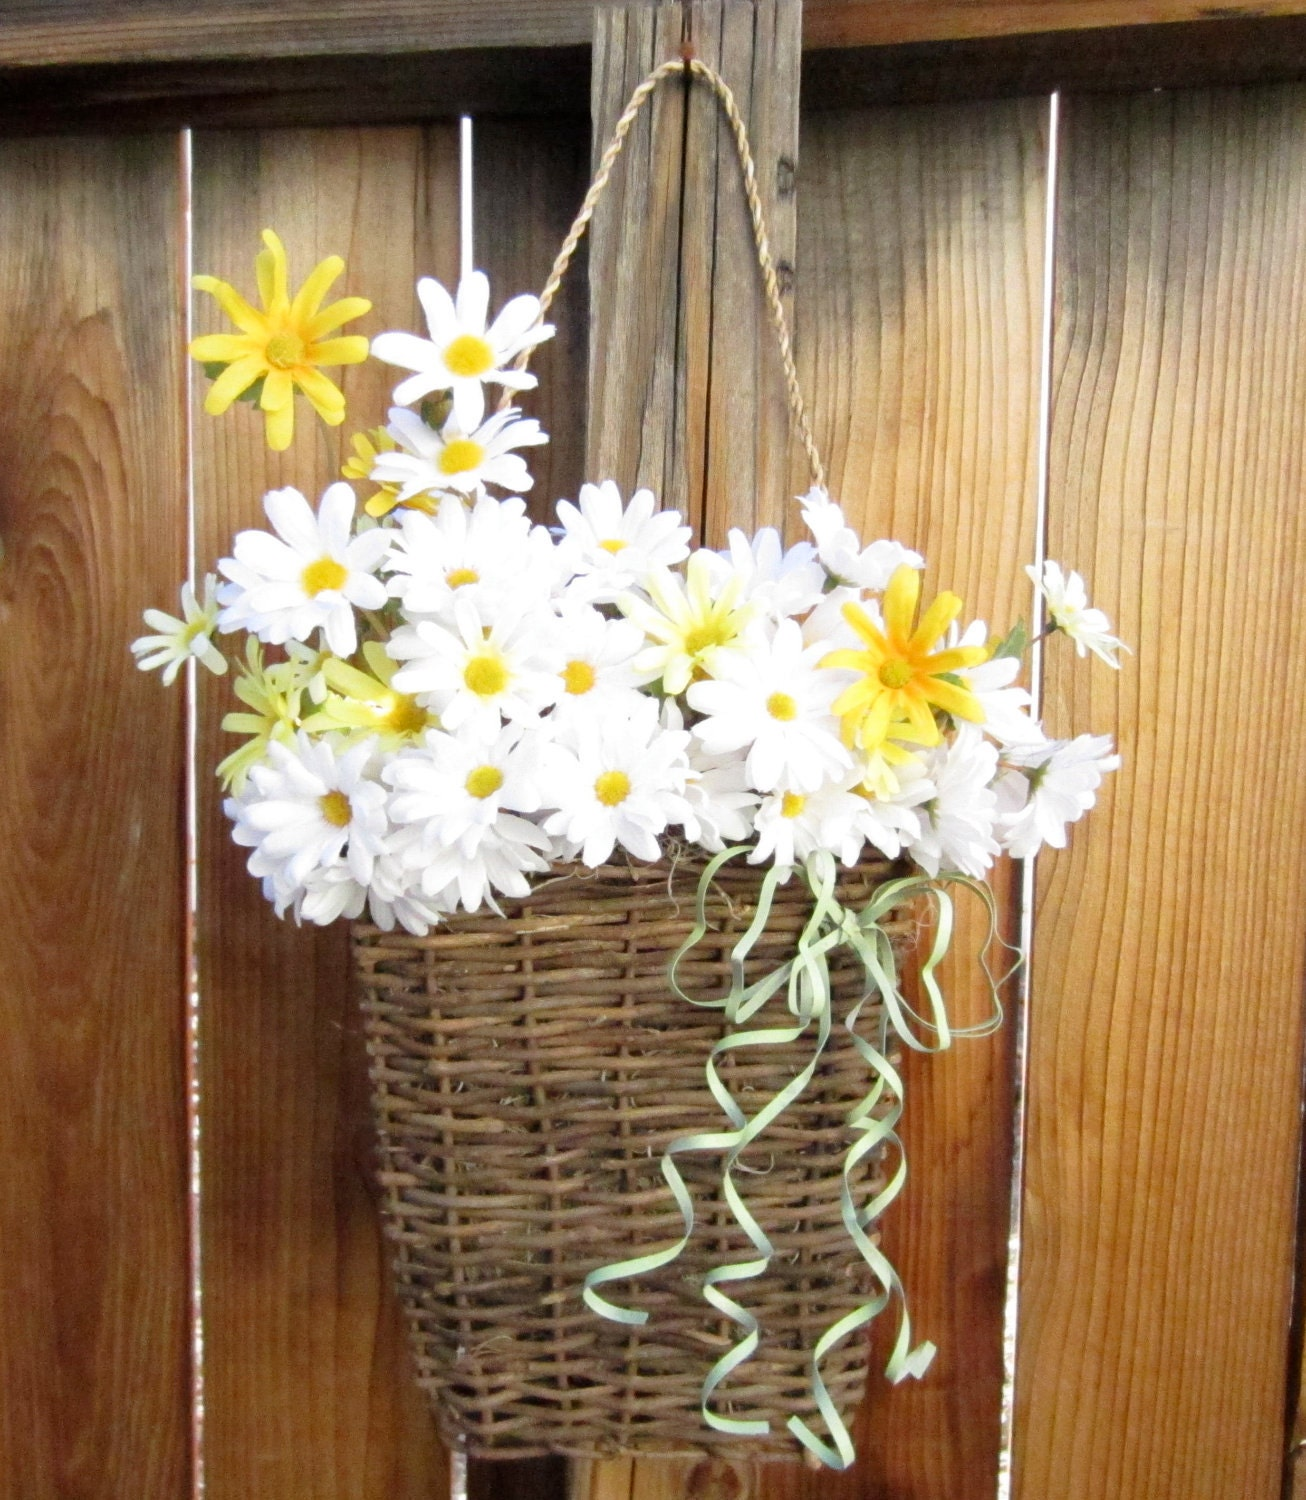 Front Door Baskets: Wall Basket With White Daisies Front Door Wreath Simple